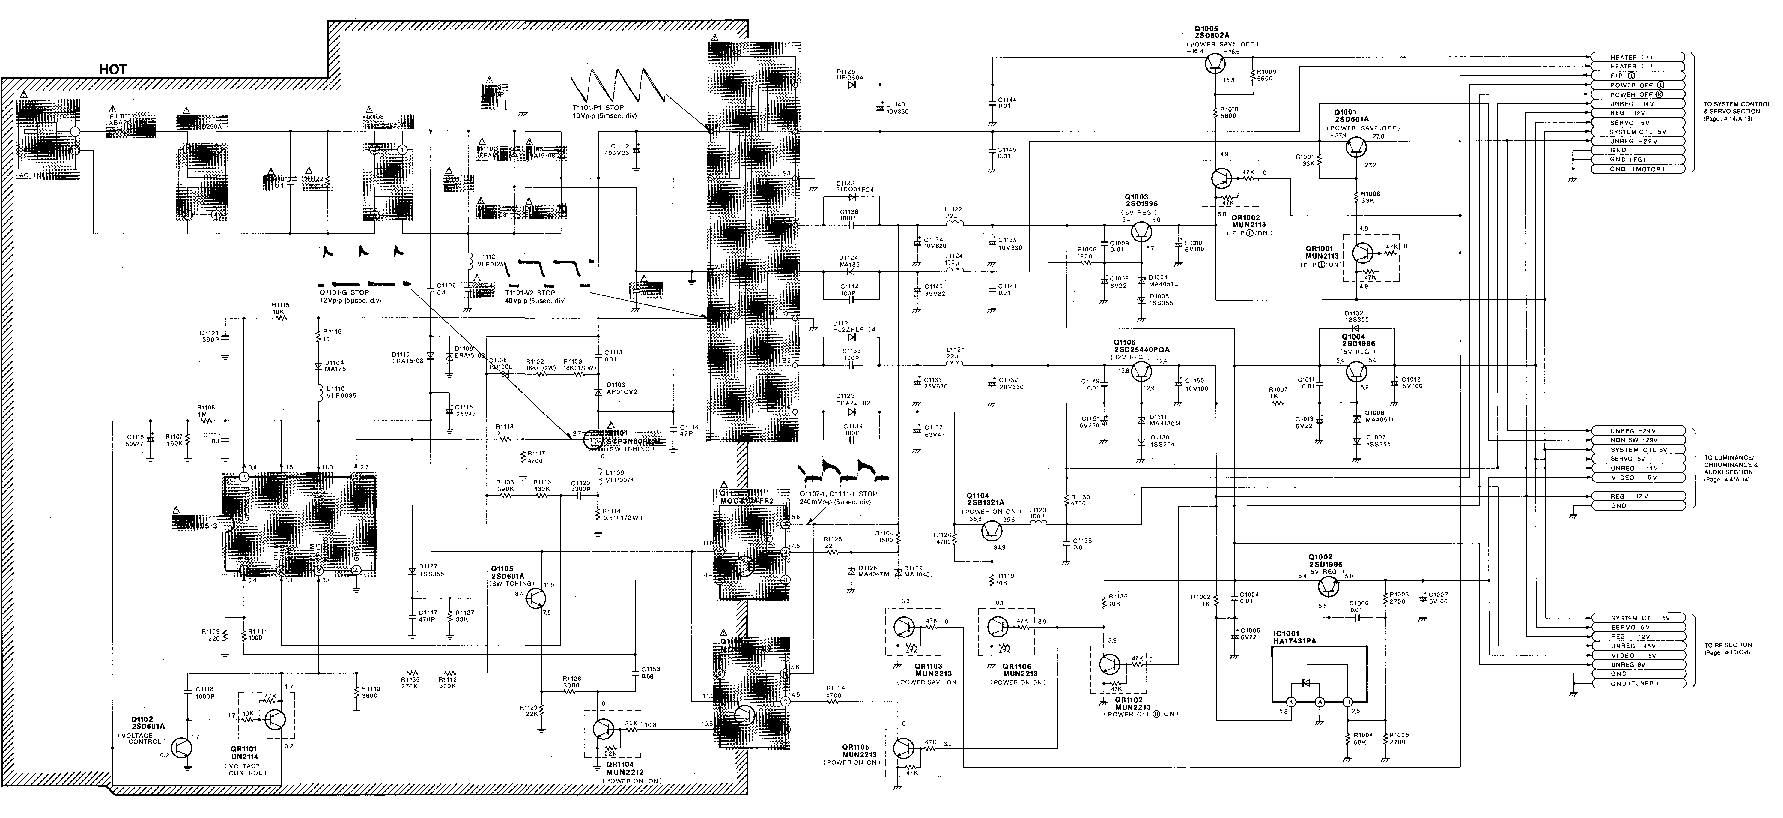 Electrical Schematics For Panasonic Plasma Tv Panasonic TV